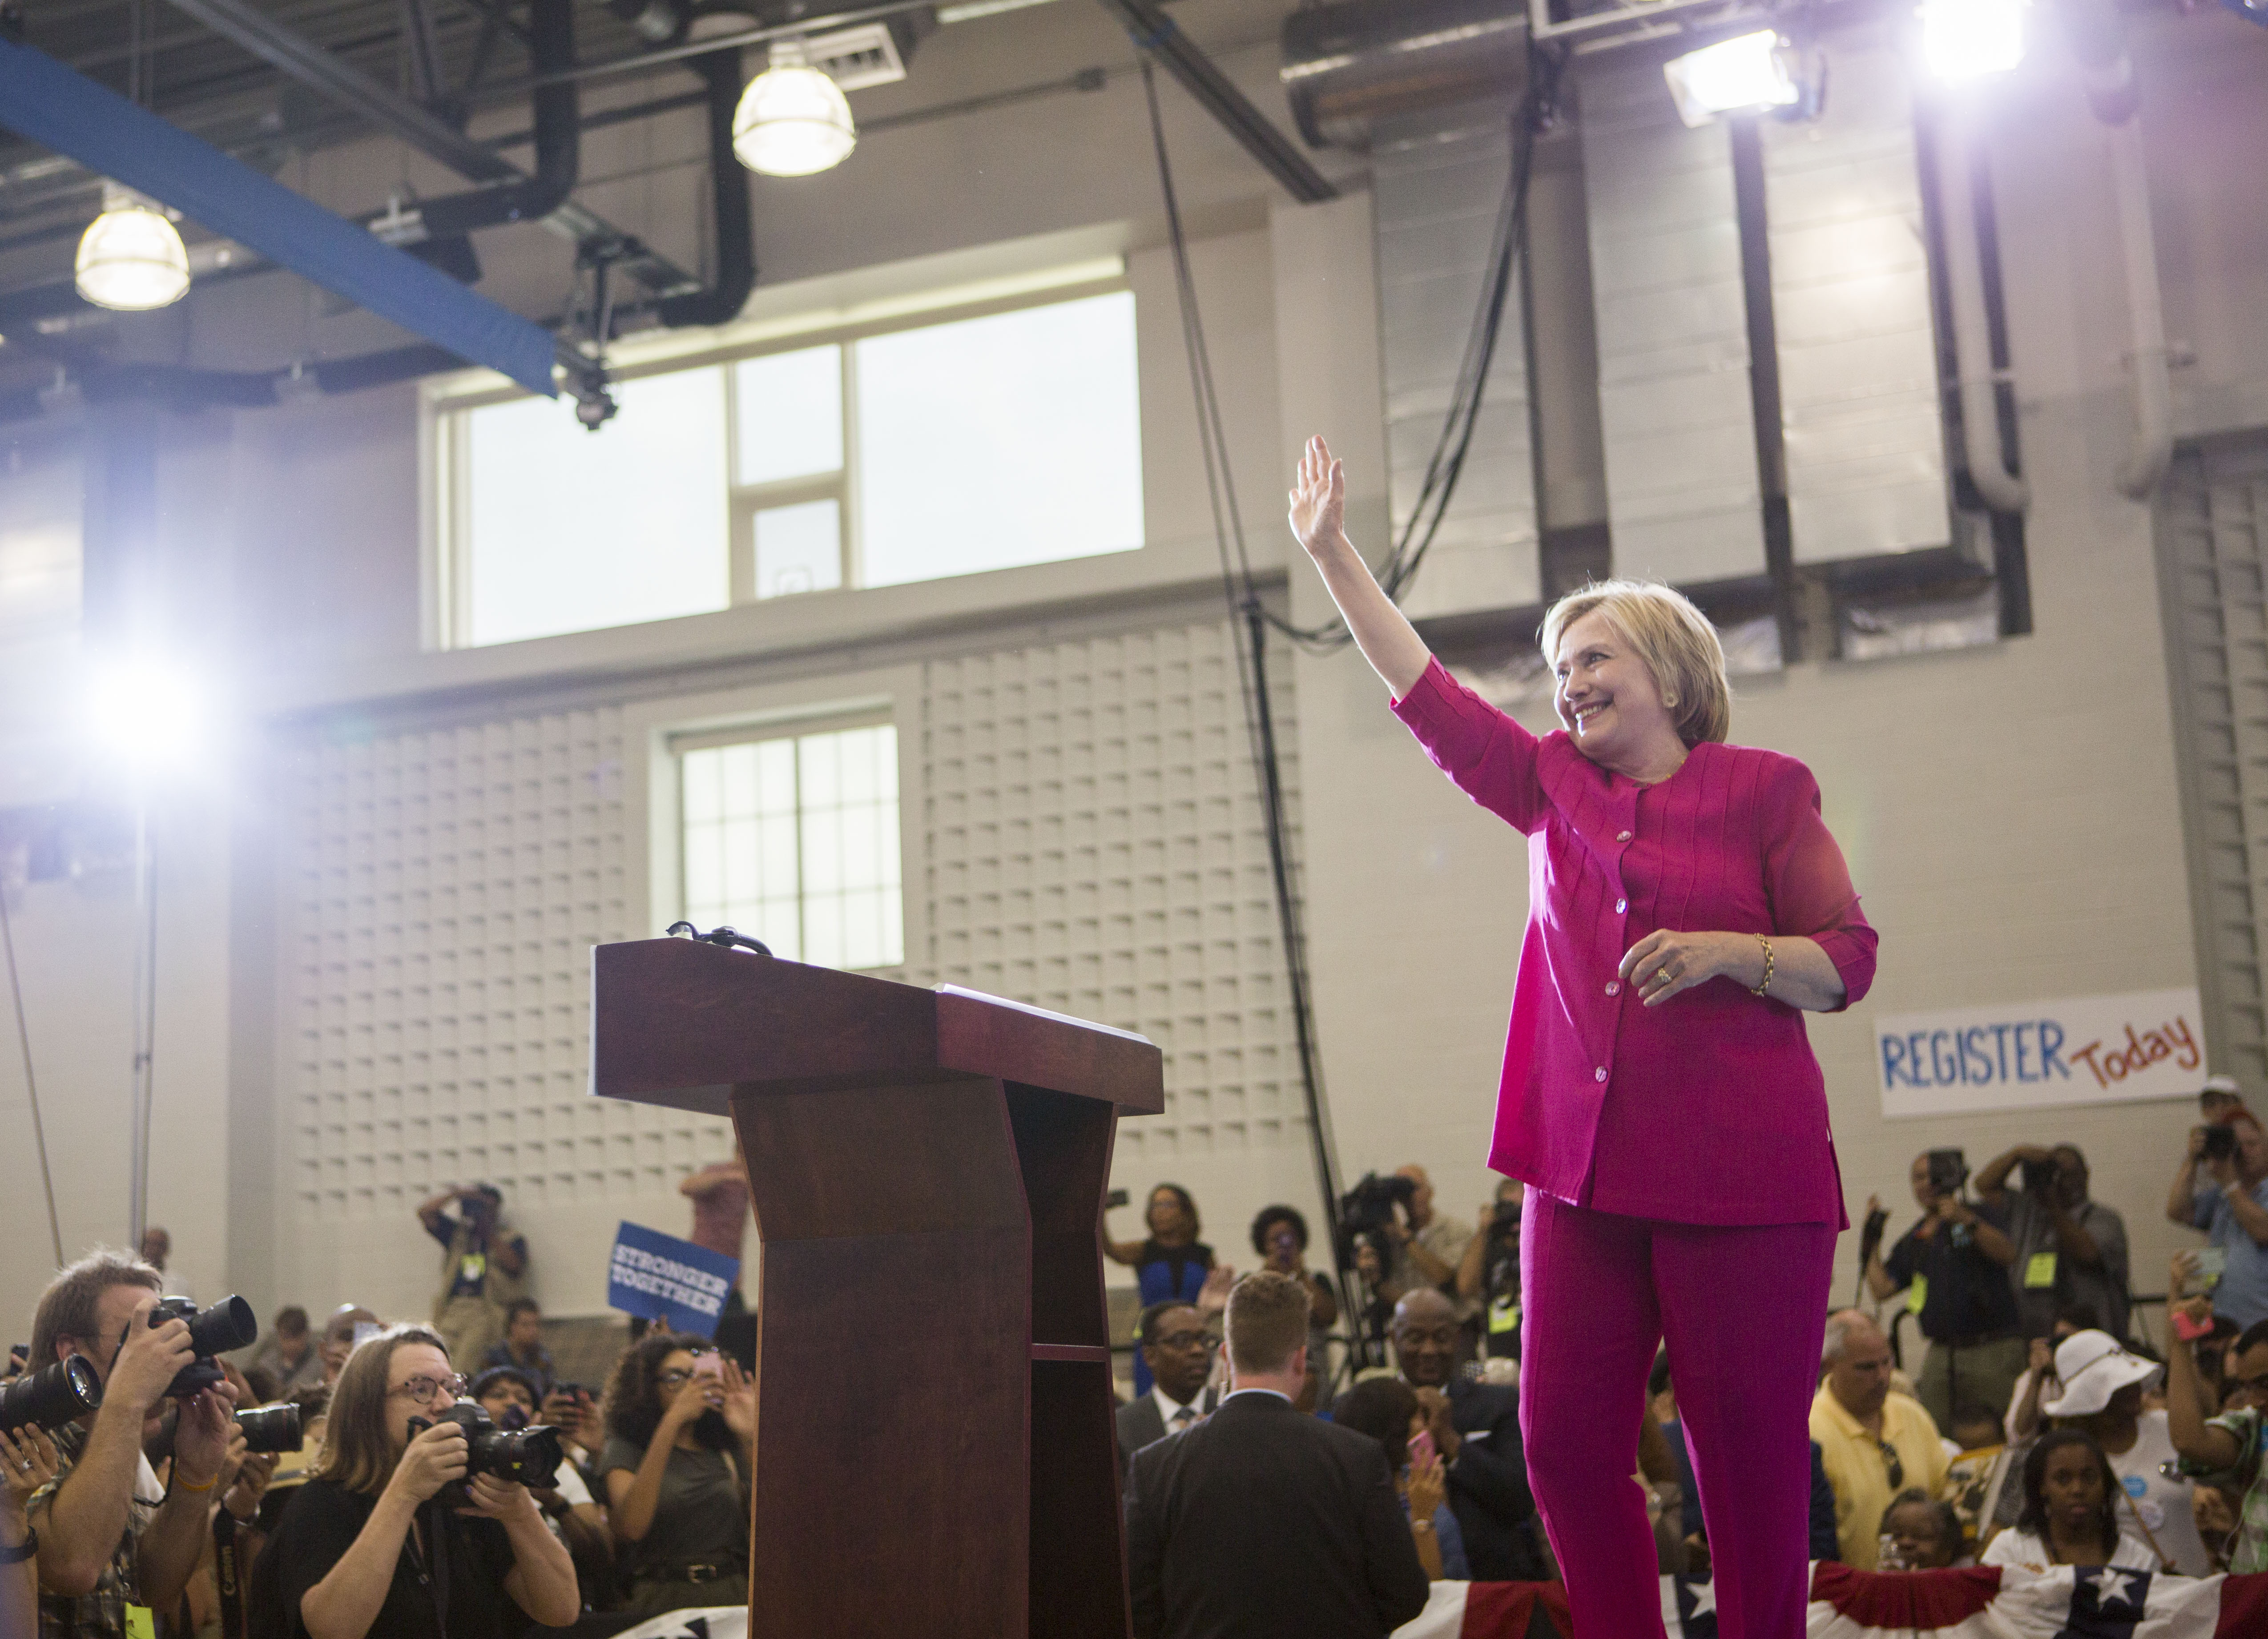 Democratic presidential nominee Hillary Clinton waves to the crowd during a voter registration event on August 16, 2016 at West Philadelphia High School in Philadelphia, Pennsylvania.